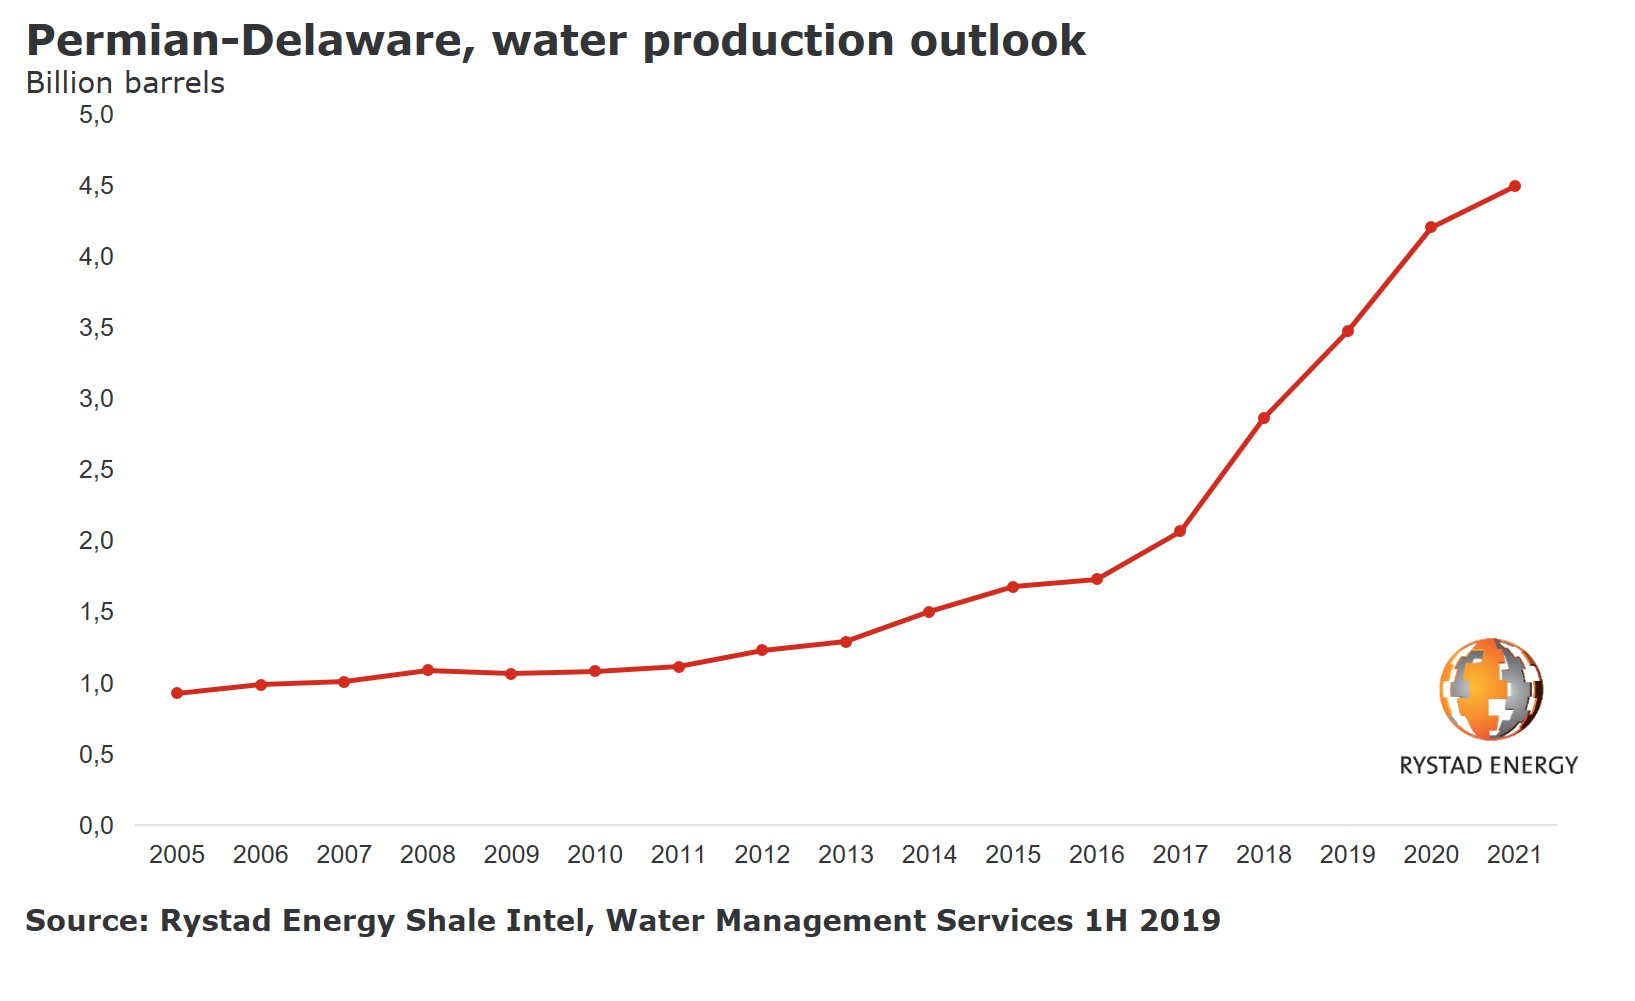 A chart showing the Permian-Dalaware, water production outlook in billion barrels